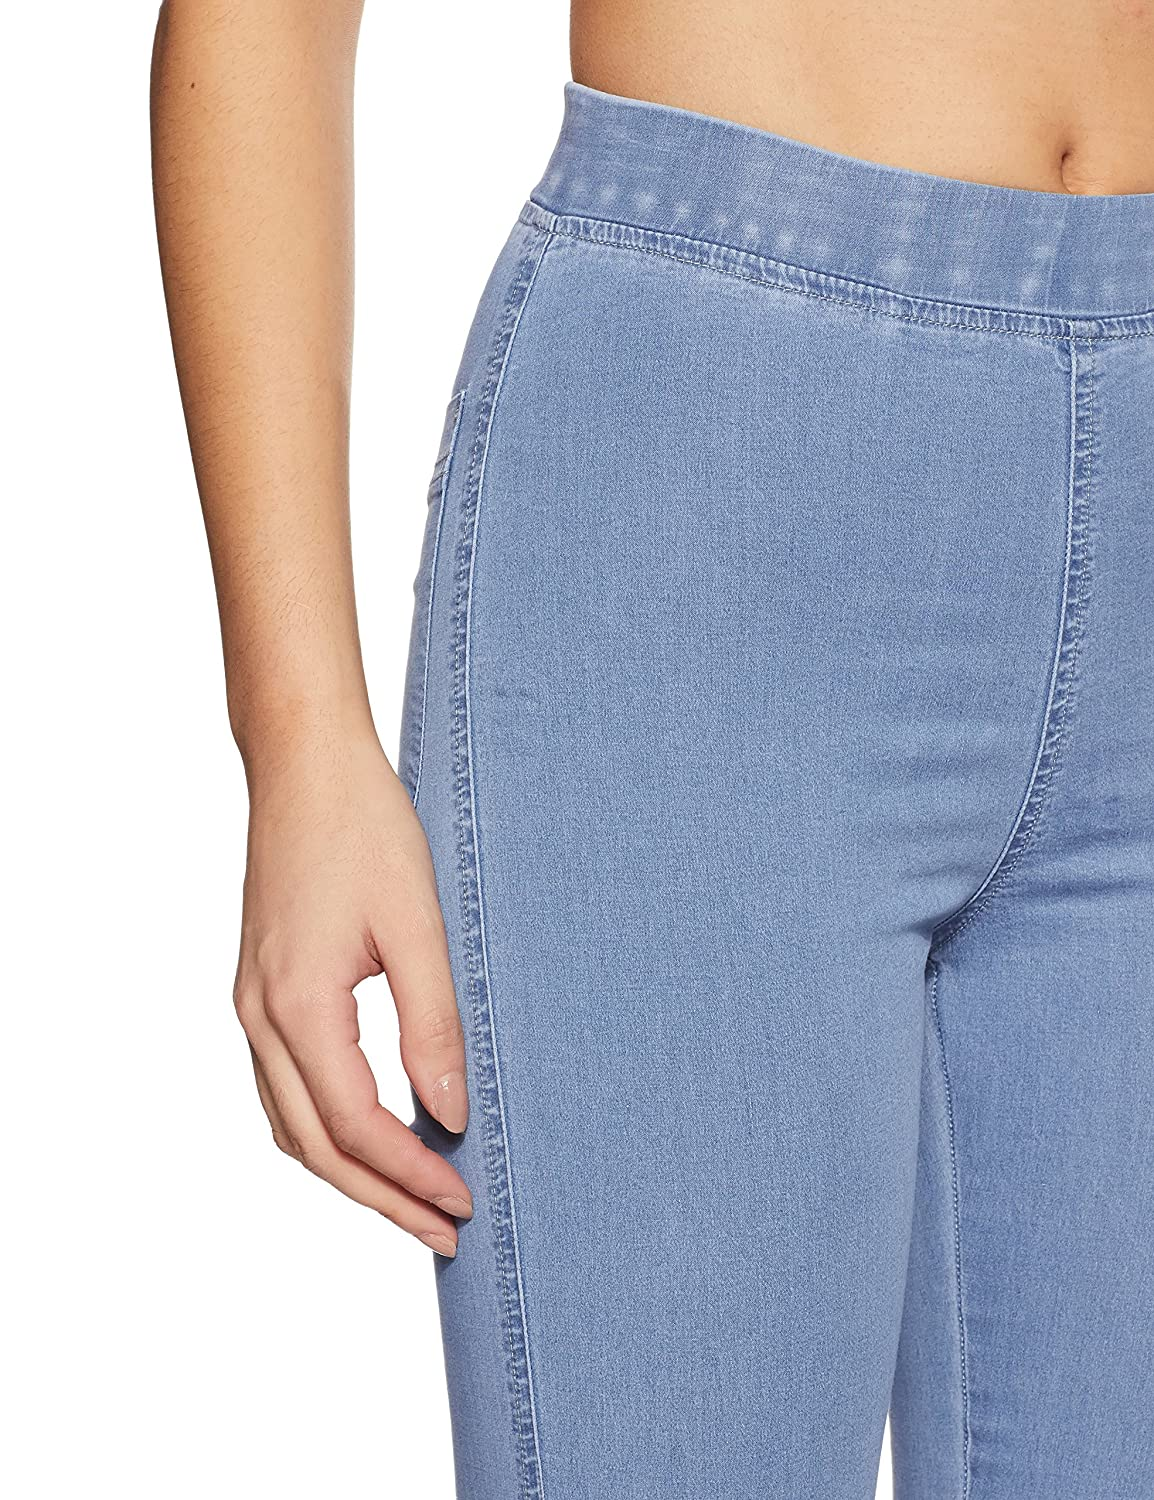 Aka Chic Womens Regular Rise Jegging Clothing Accessories Nesha Linen Pants In Light Blue